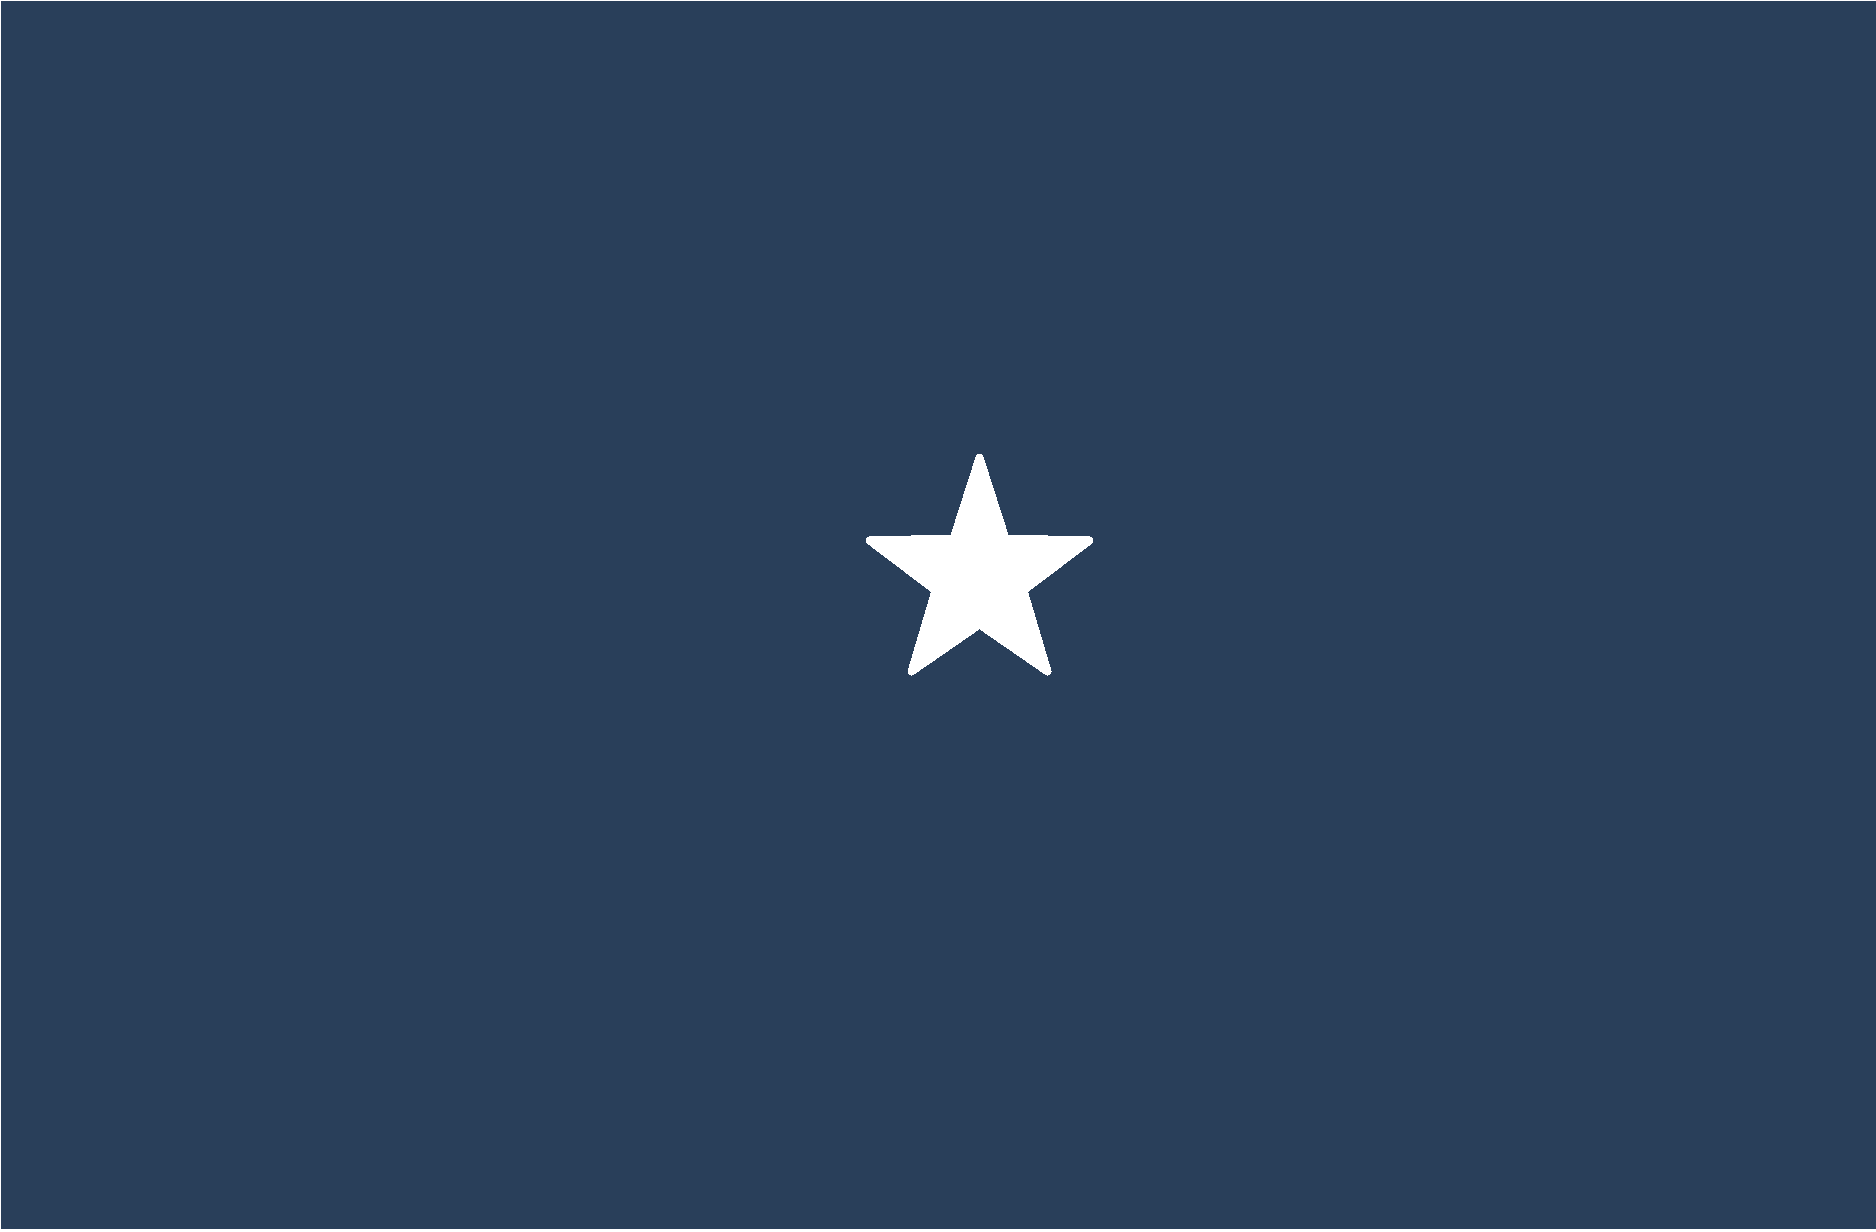 United States Air Force Corps Brigadier General Flag